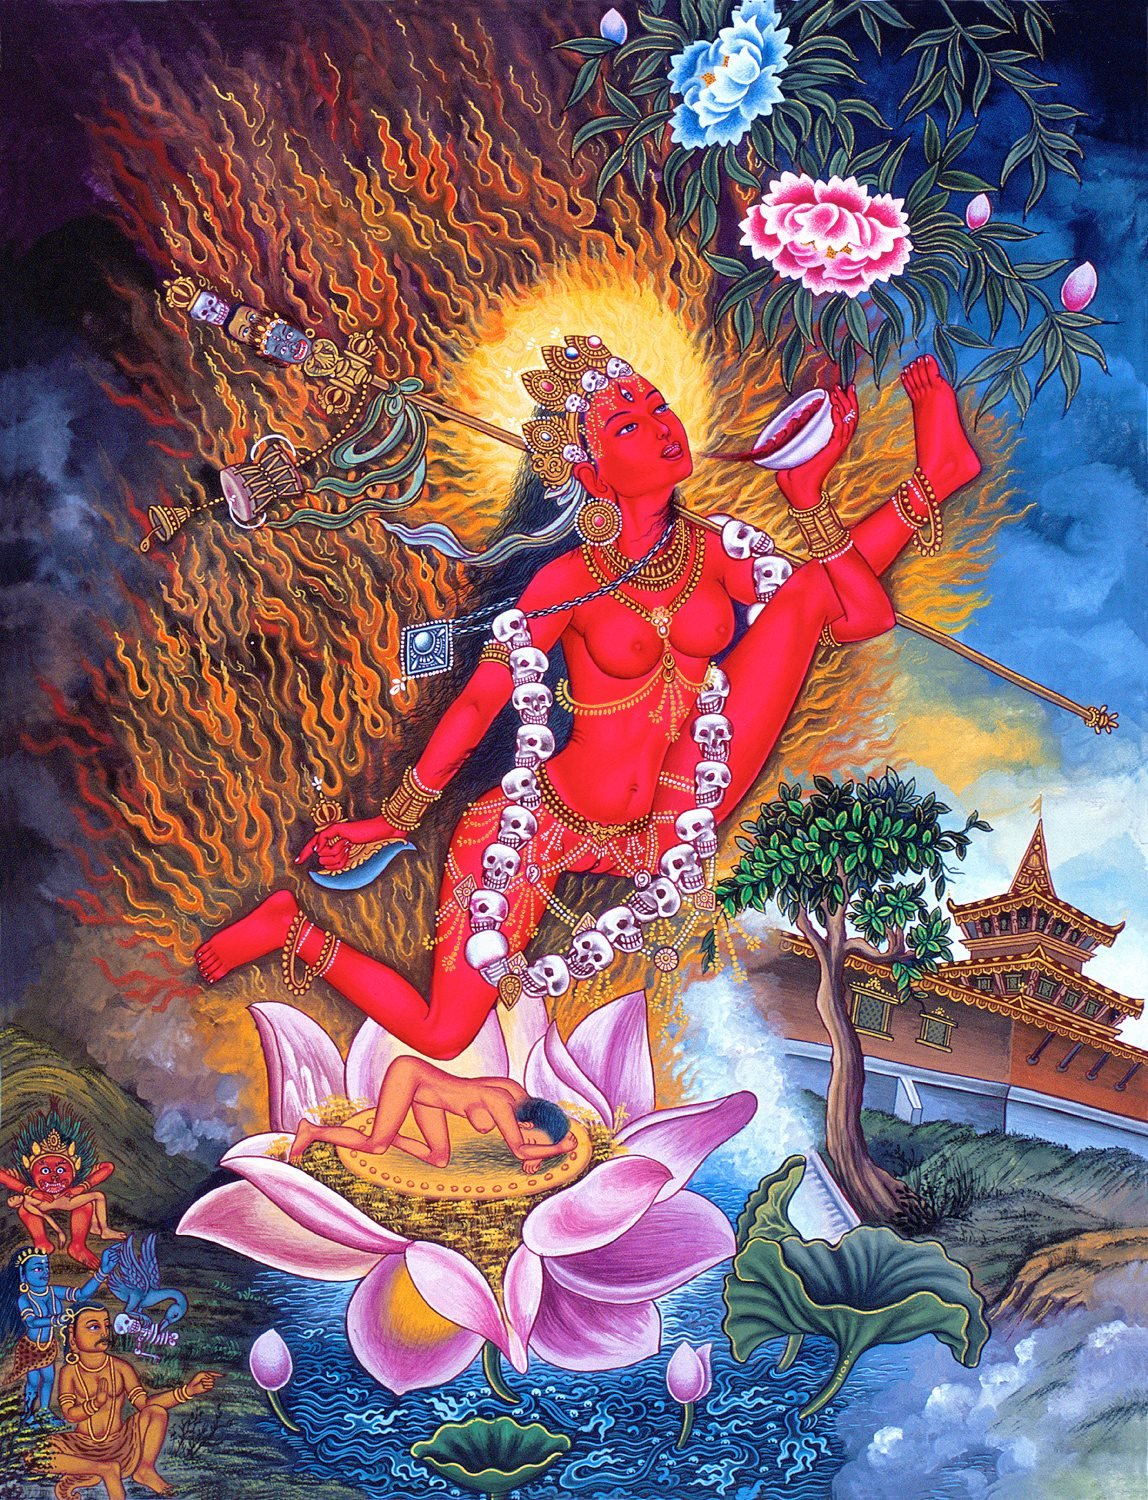 Vajrayogini Practice Is A Highest Yoga Tantra Practice Suitable For Advanced Practitioners